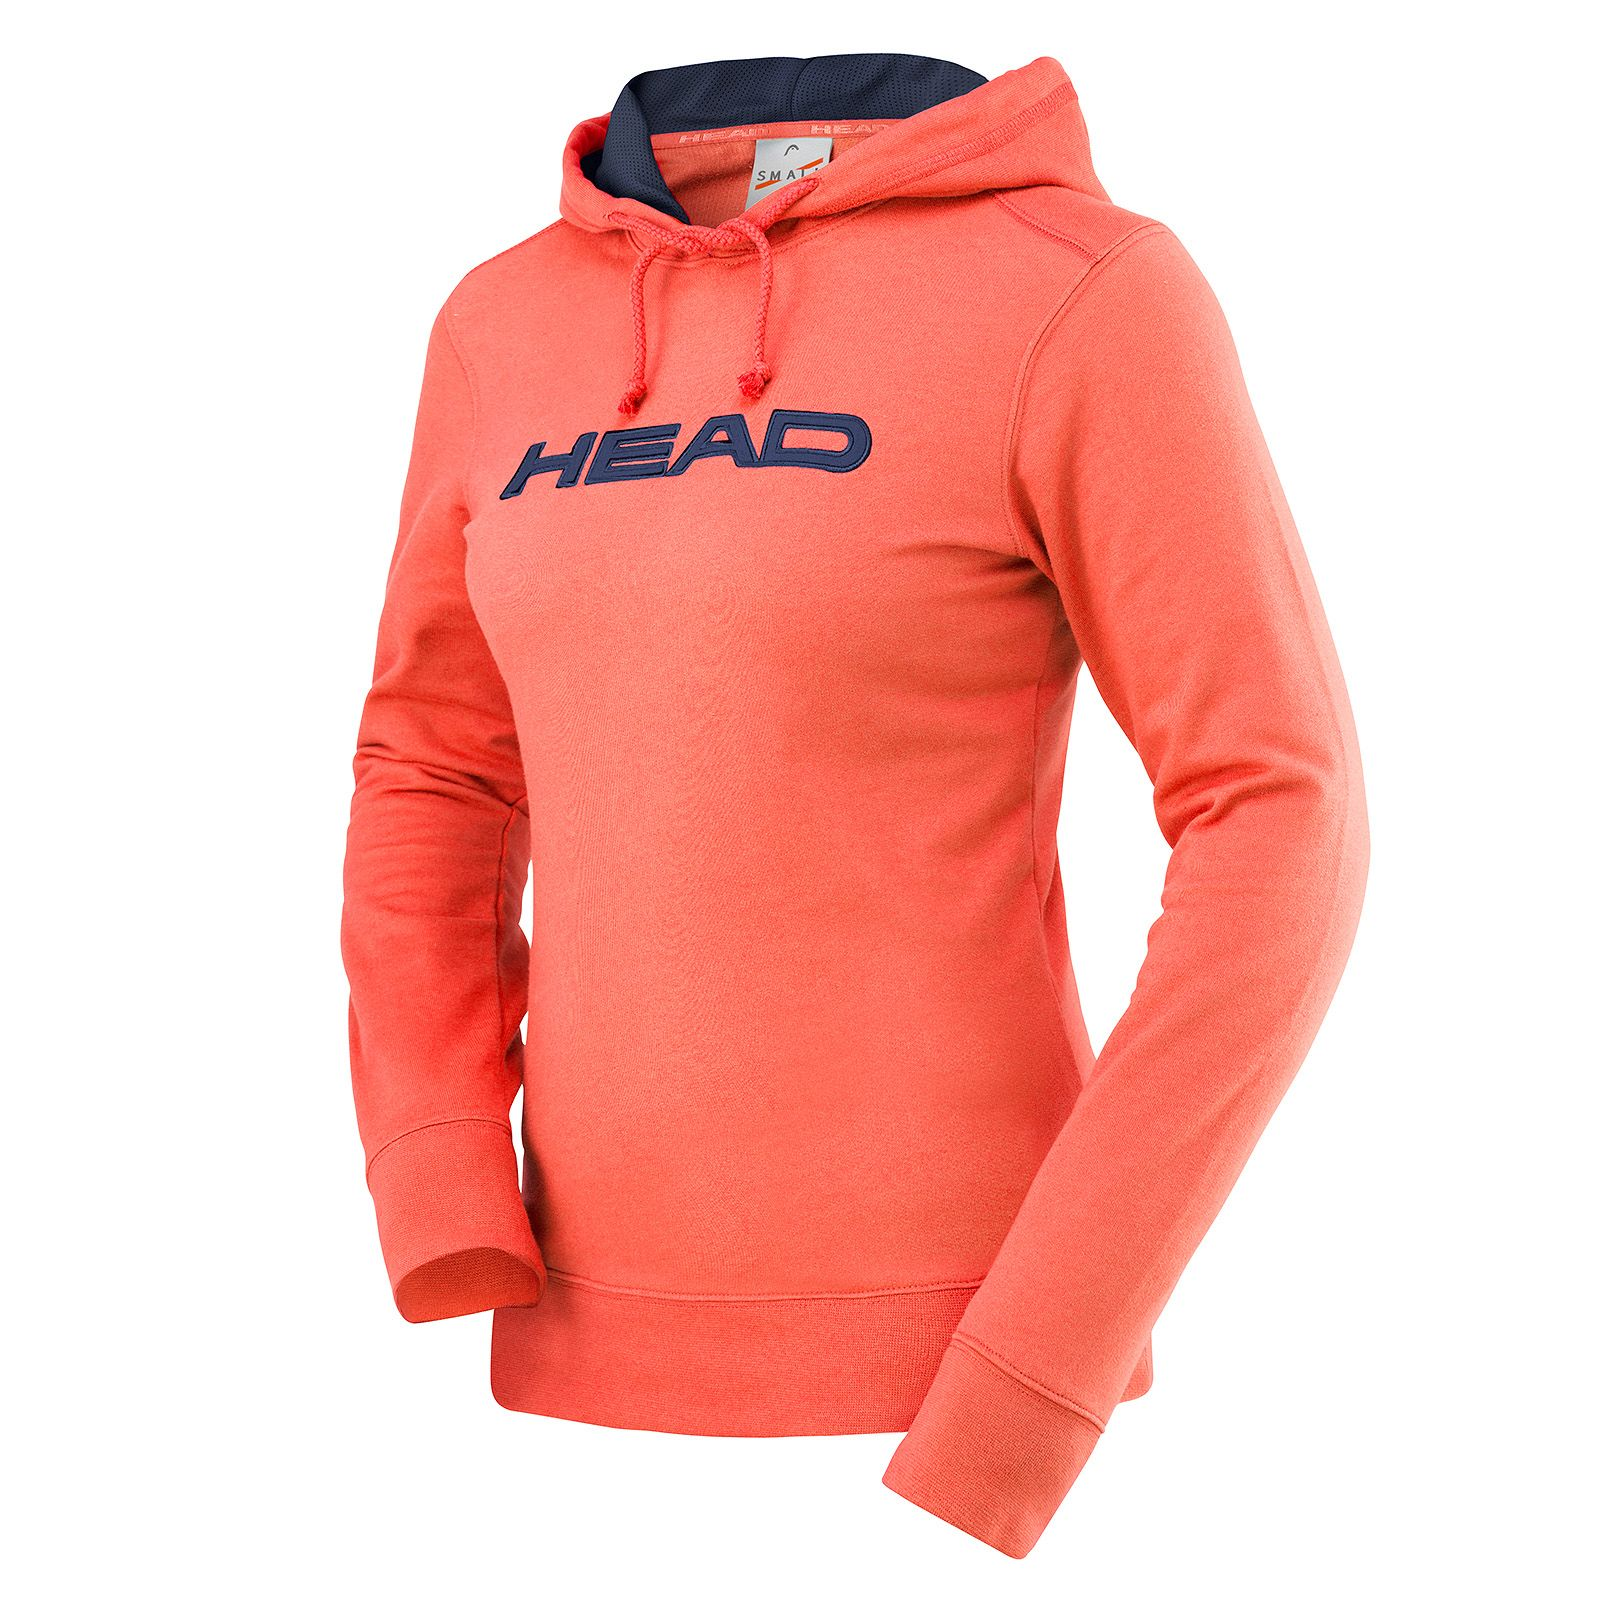 HEAD Transition Rosie Hoody Women Orange L